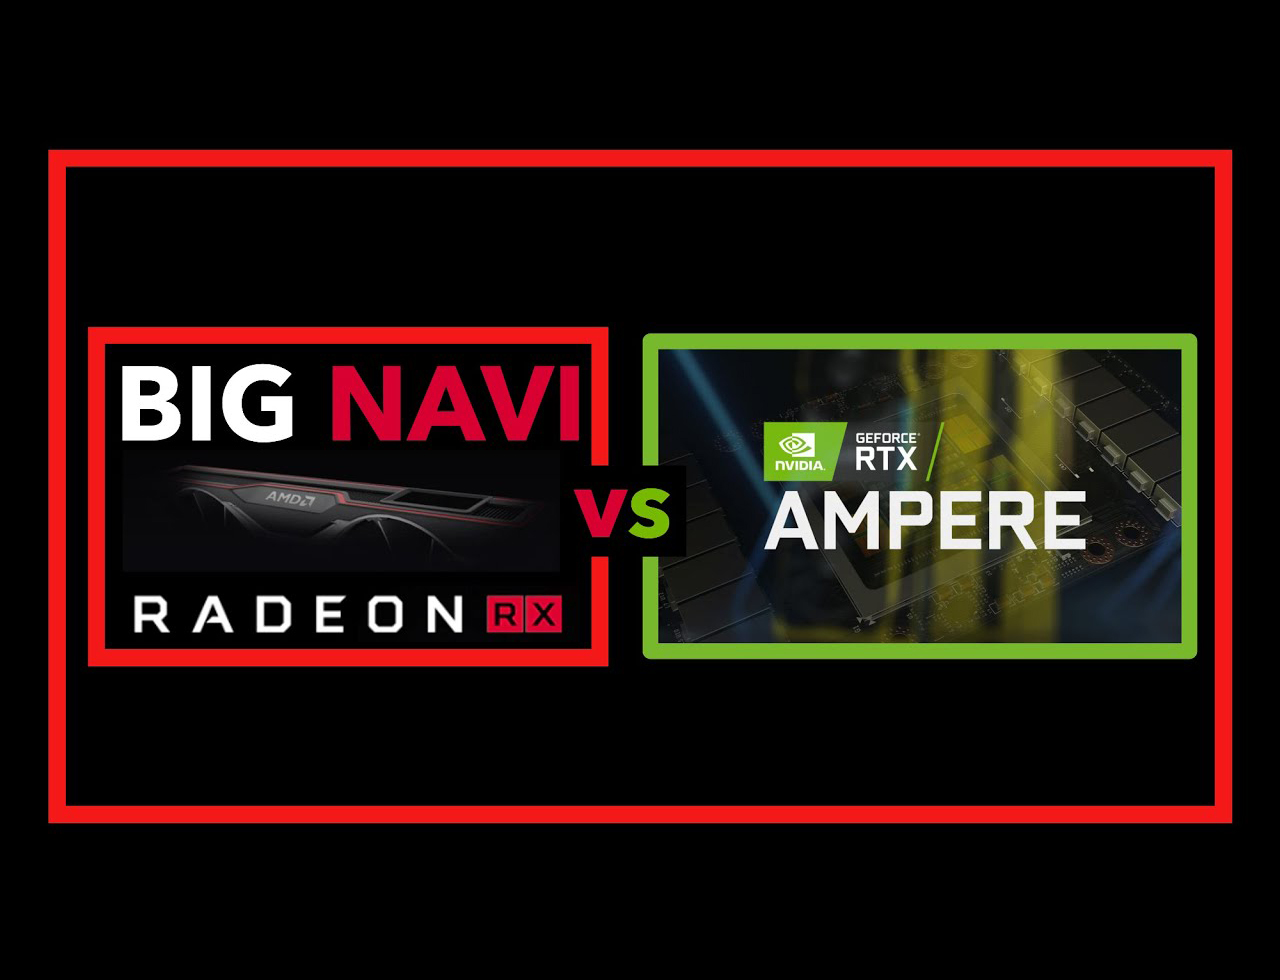 More Evidence Points Towards Amd S Rdna2 Big Navi Superiority Over Nvidia S High End Ampere Rtx 3000 Gpus Notebookcheck Net News